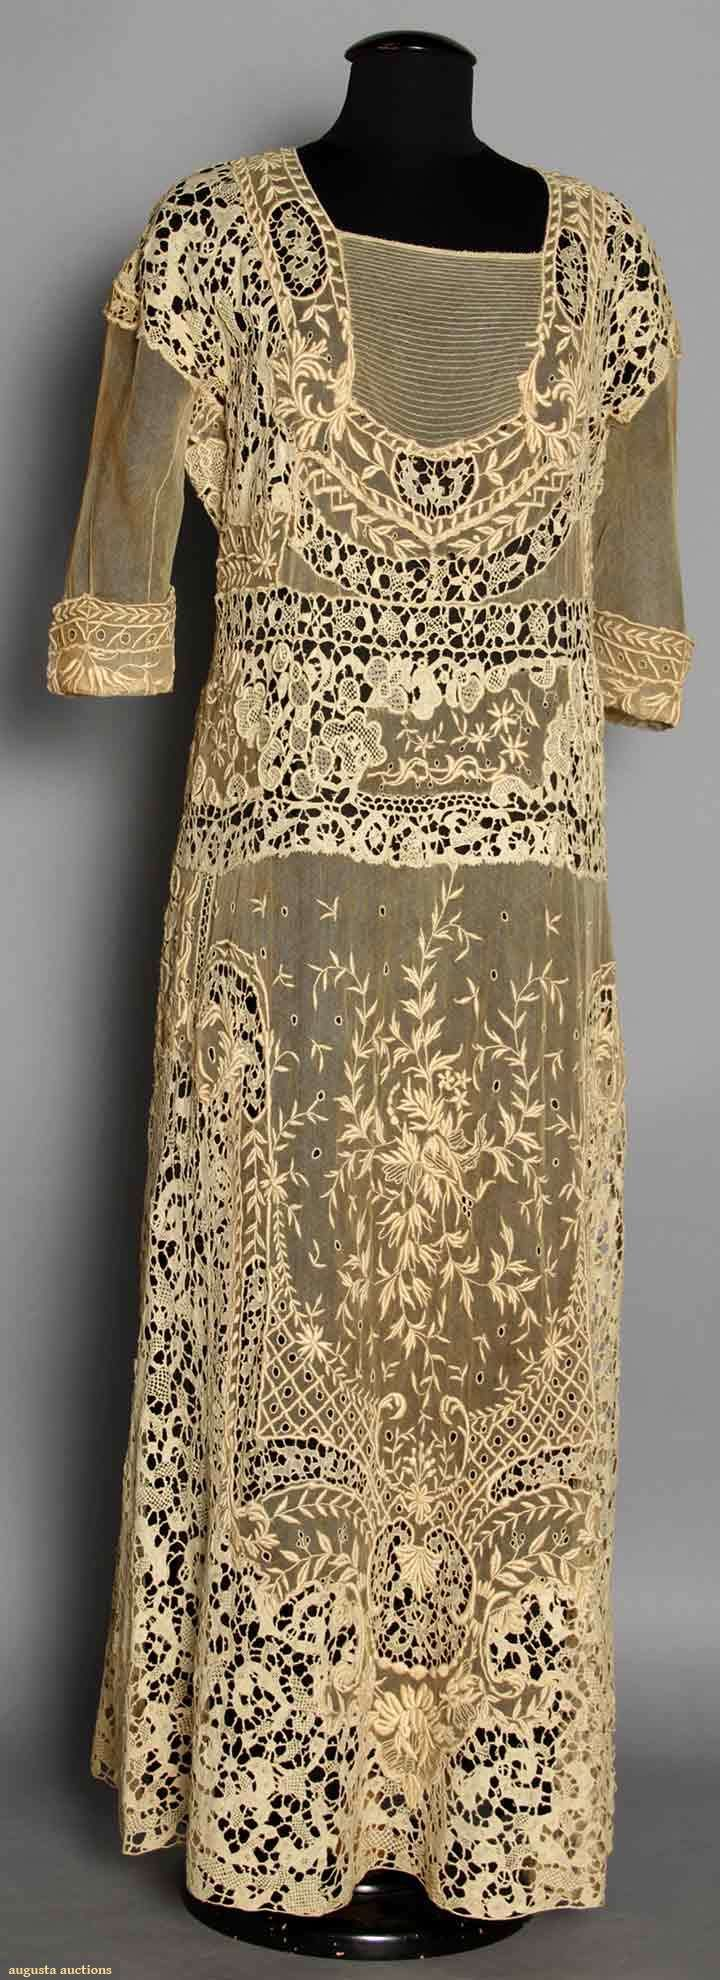 Lace Tea Gown, C. 1919, Augusta Auctions, MAY 13th & 14th, 2014, Lot 84